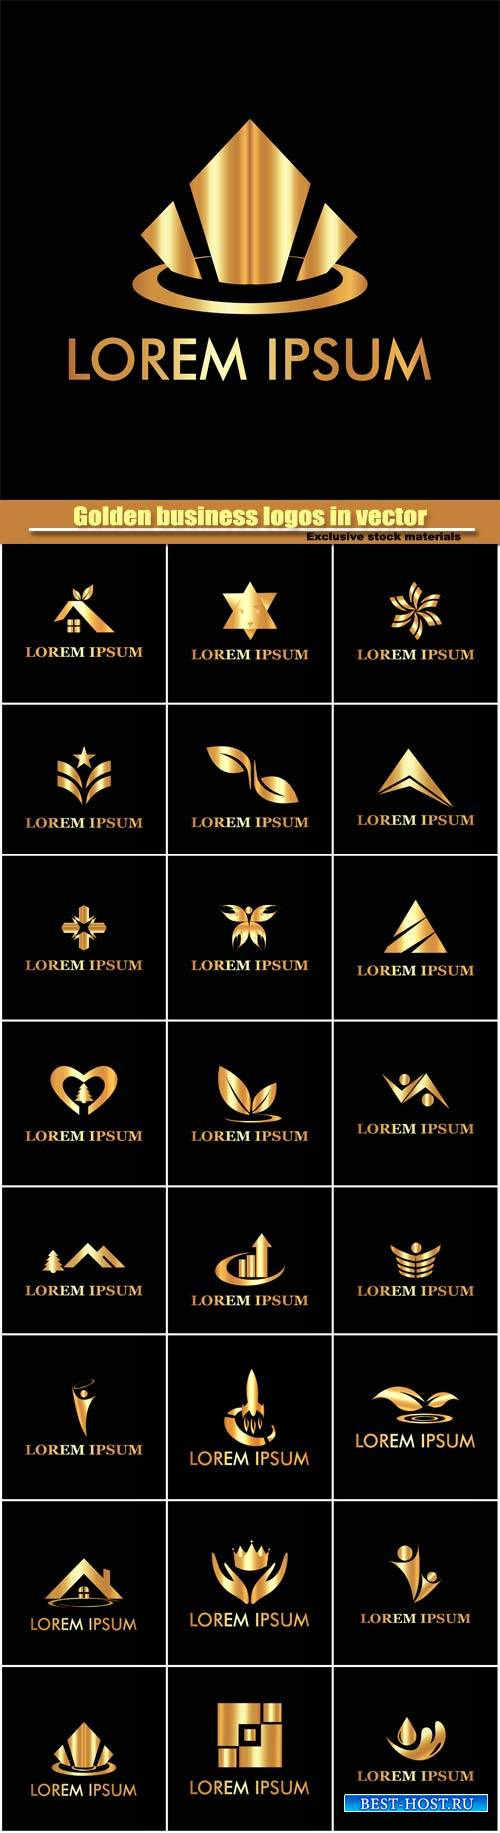 Stylish golden business logos in vector